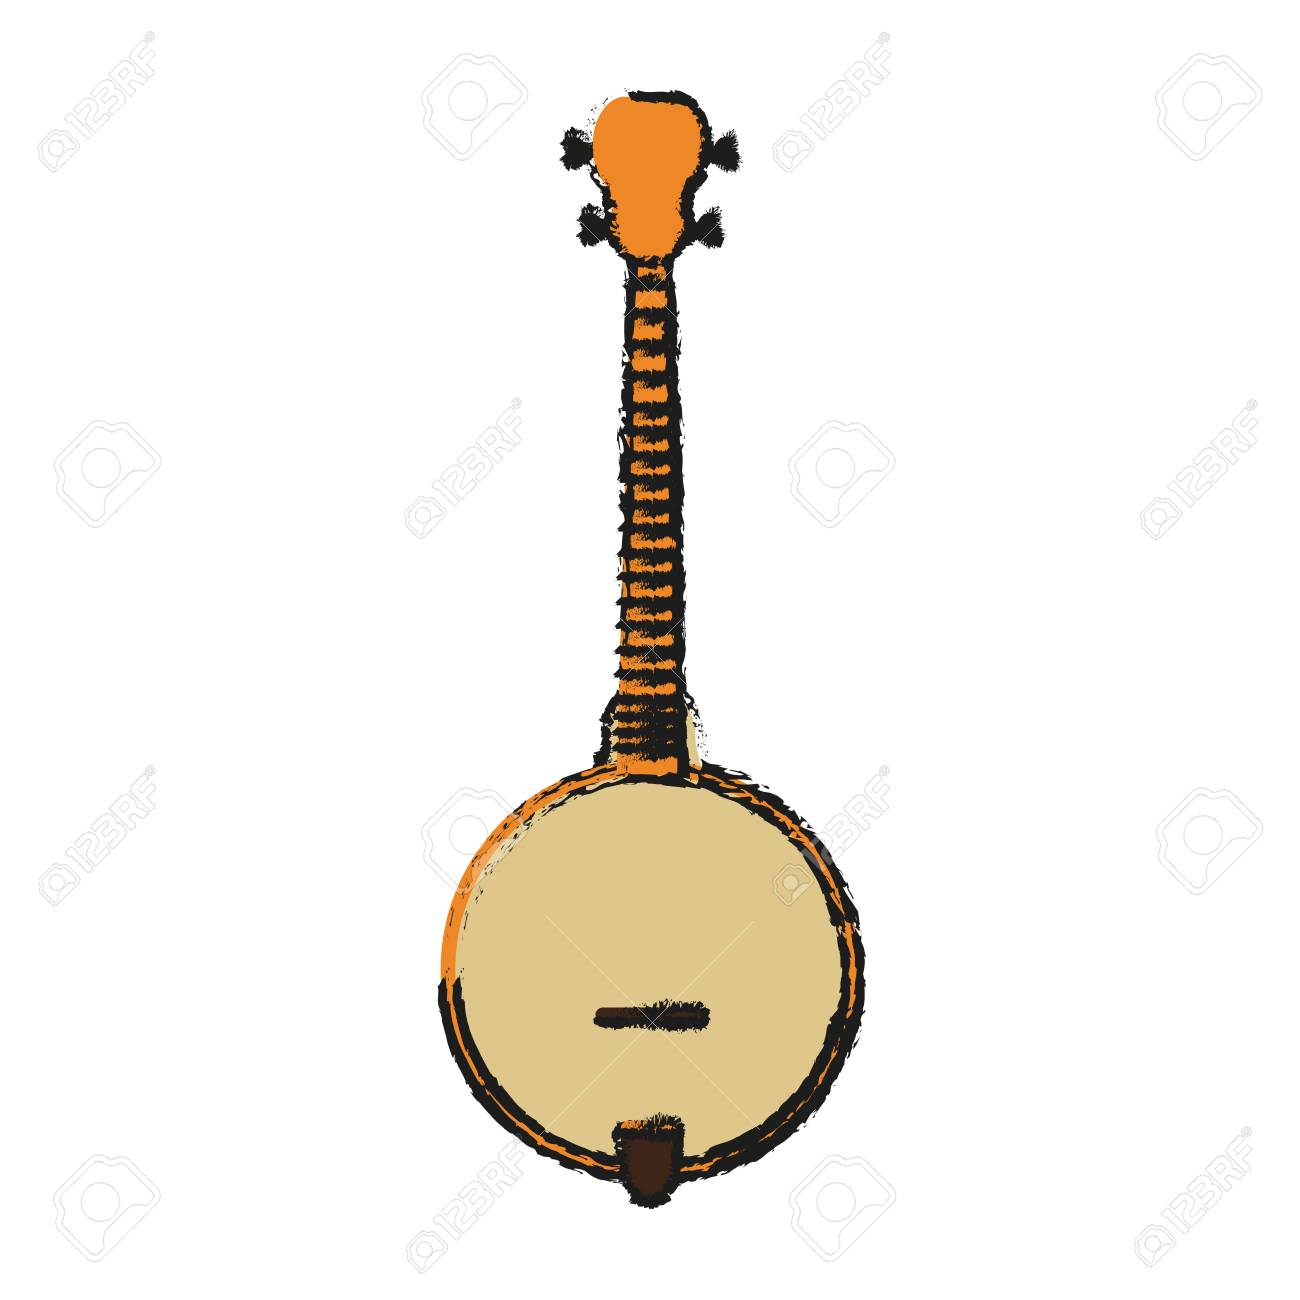 Guitar icon of instrument music and sound theme Isolated design